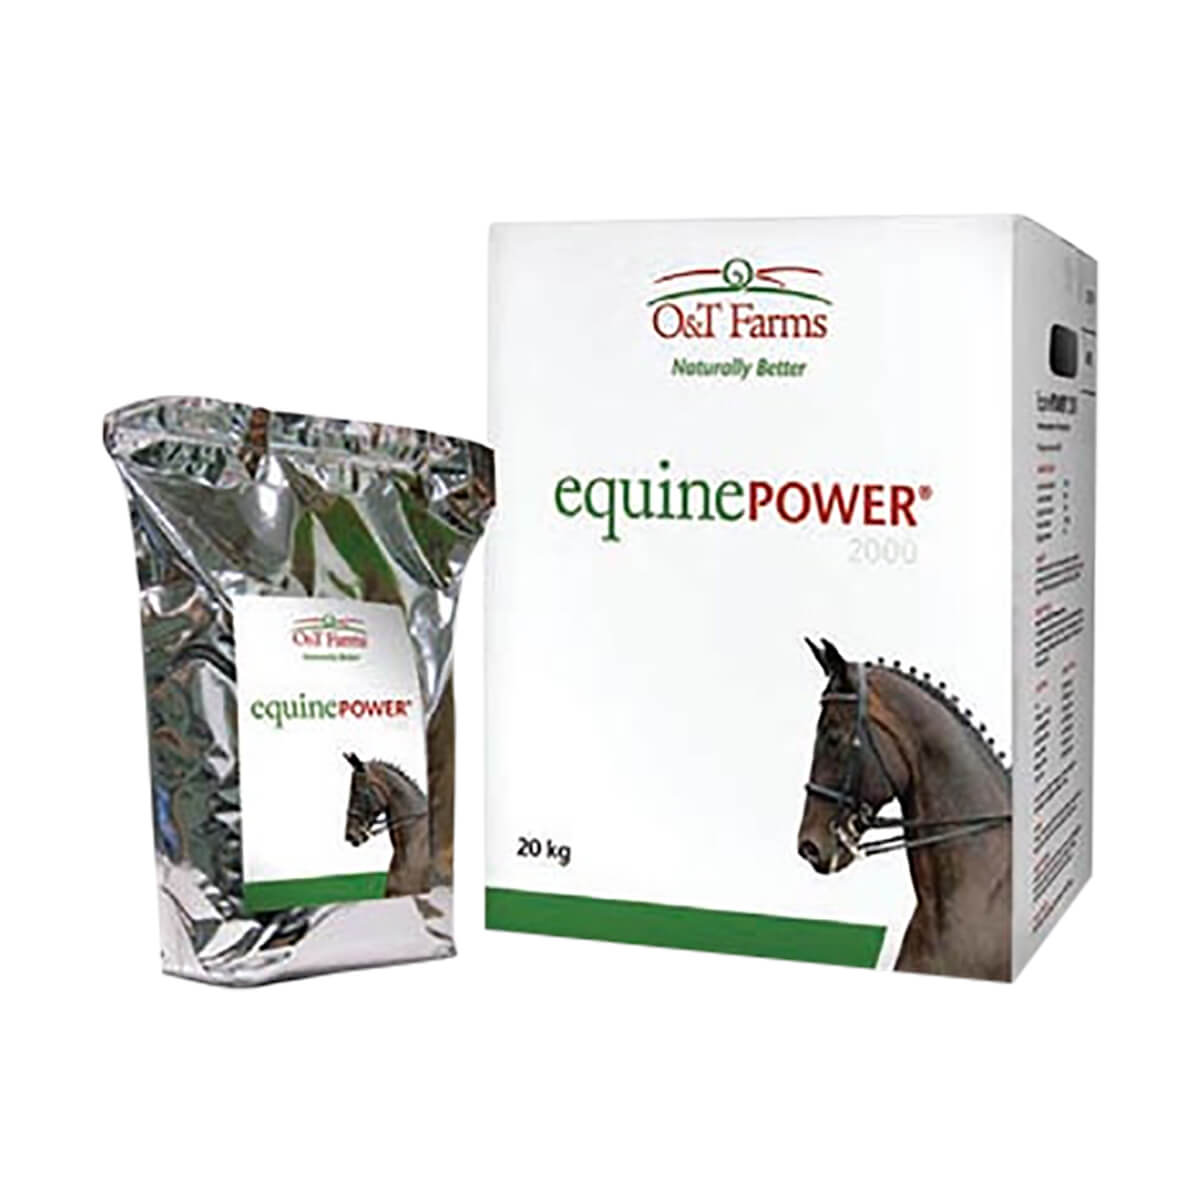 EquinePower™ 2000 - 40 lb.